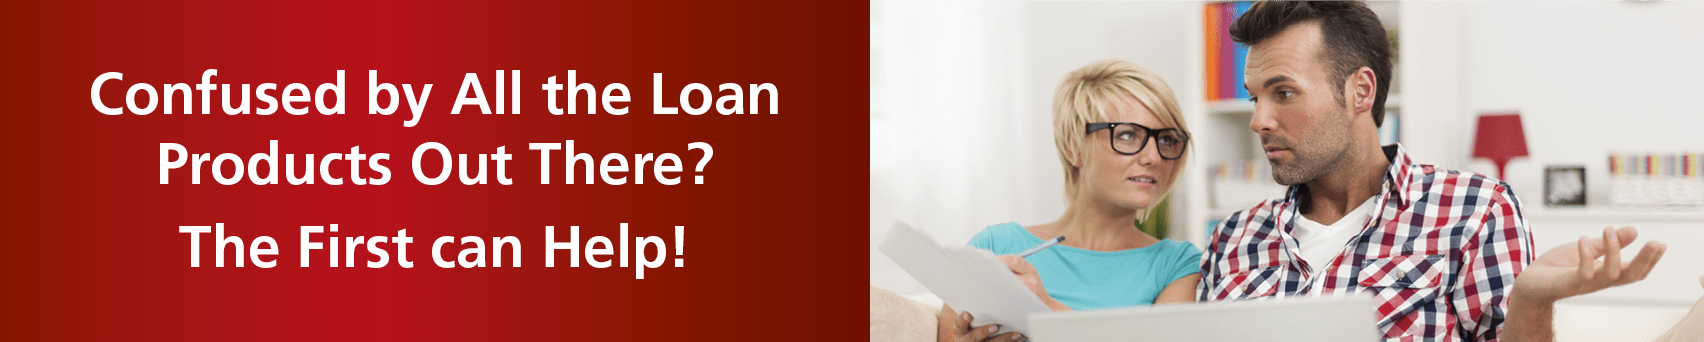 Confused by All the Loan Products out there? The First Can Help!